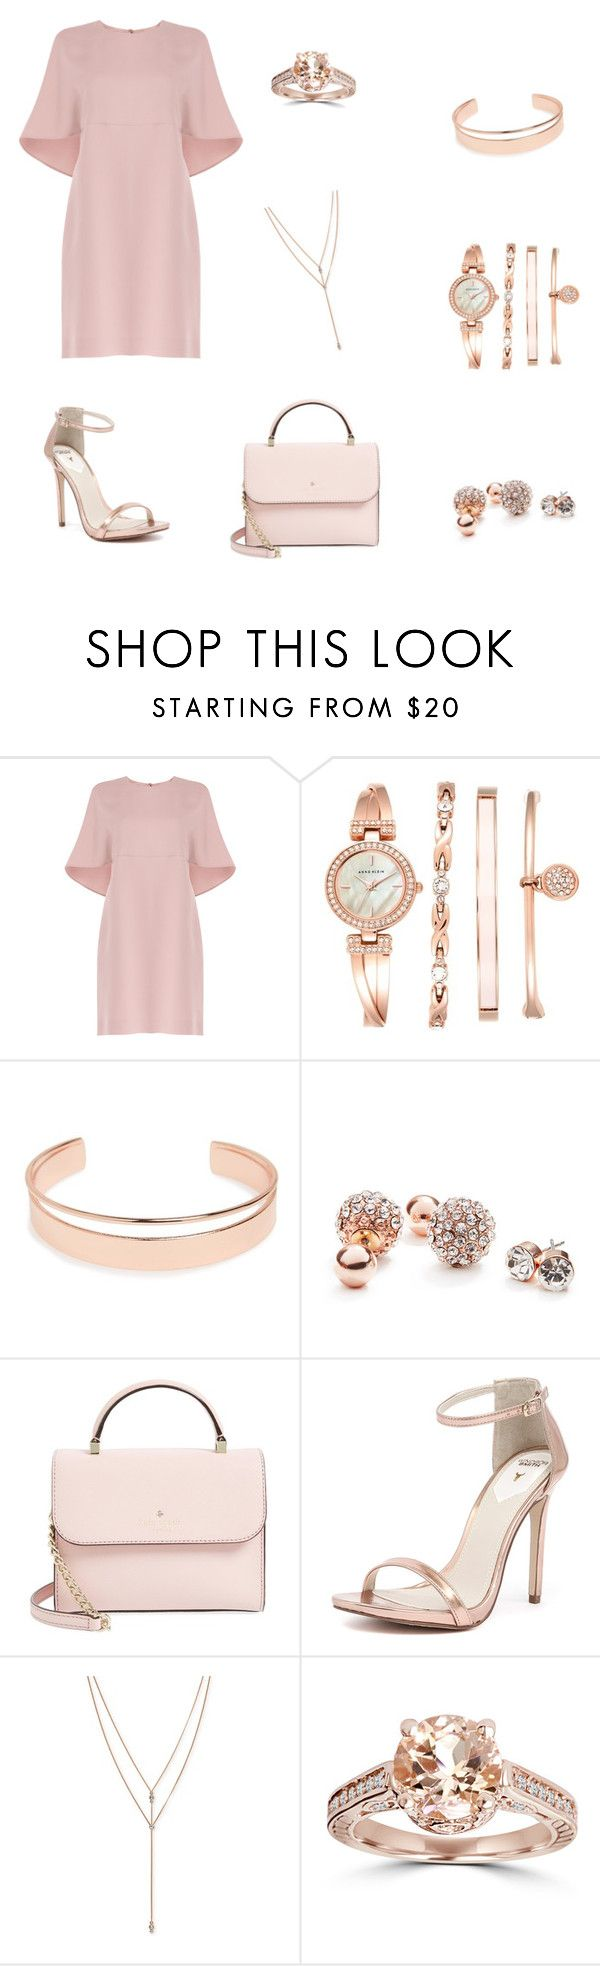 """""""Rose Gold"""" by kayy-giuseppe ❤ liked on Polyvore featuring Valentino, Anne Klein, Leith, GUESS, Kate Spade, Windsor Smith and Vince Camuto"""